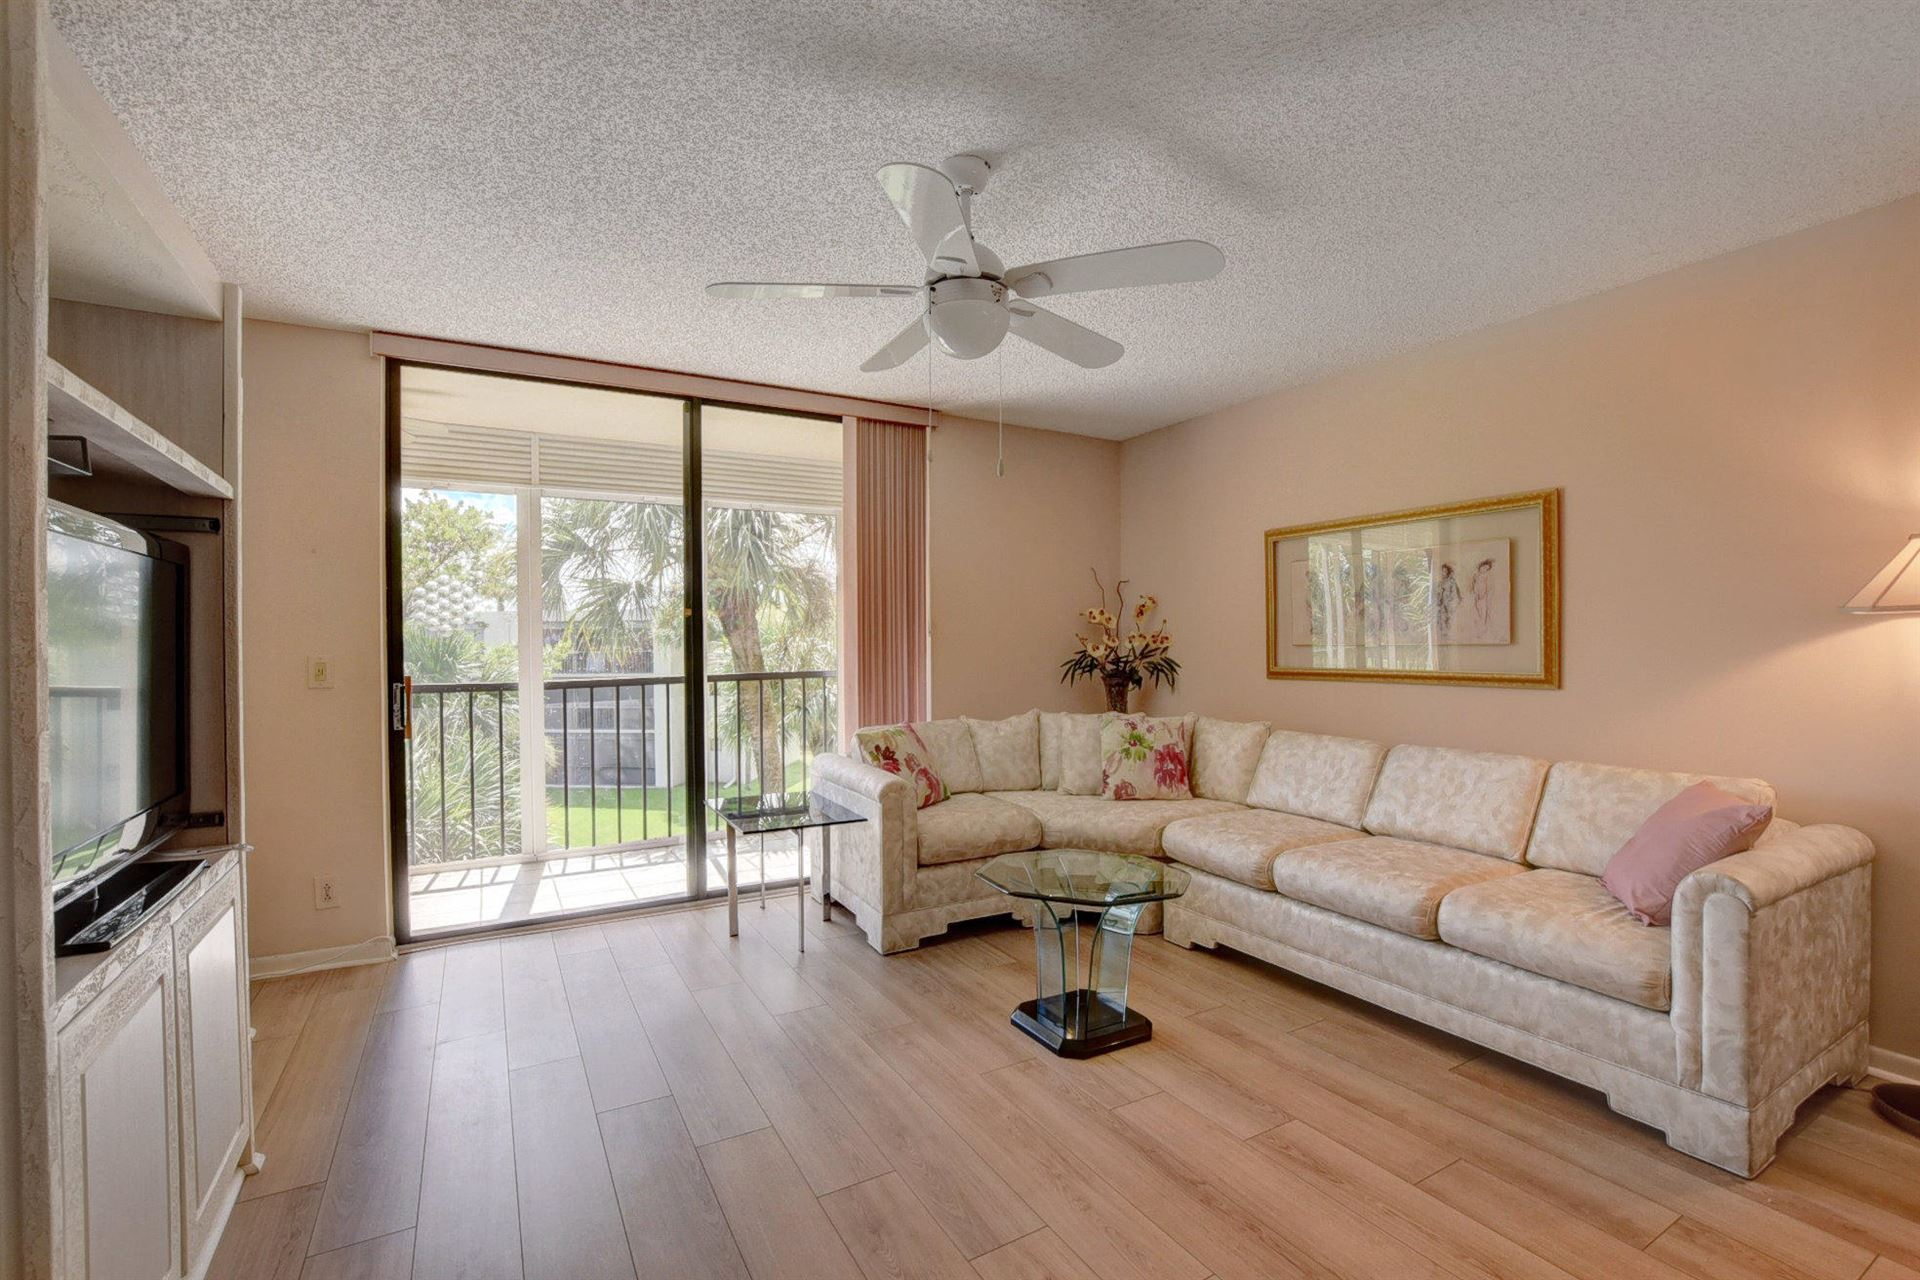 5370 Las Verdes Circle #301, Delray Beach, FL 33484 - MLS#: RX-10646055